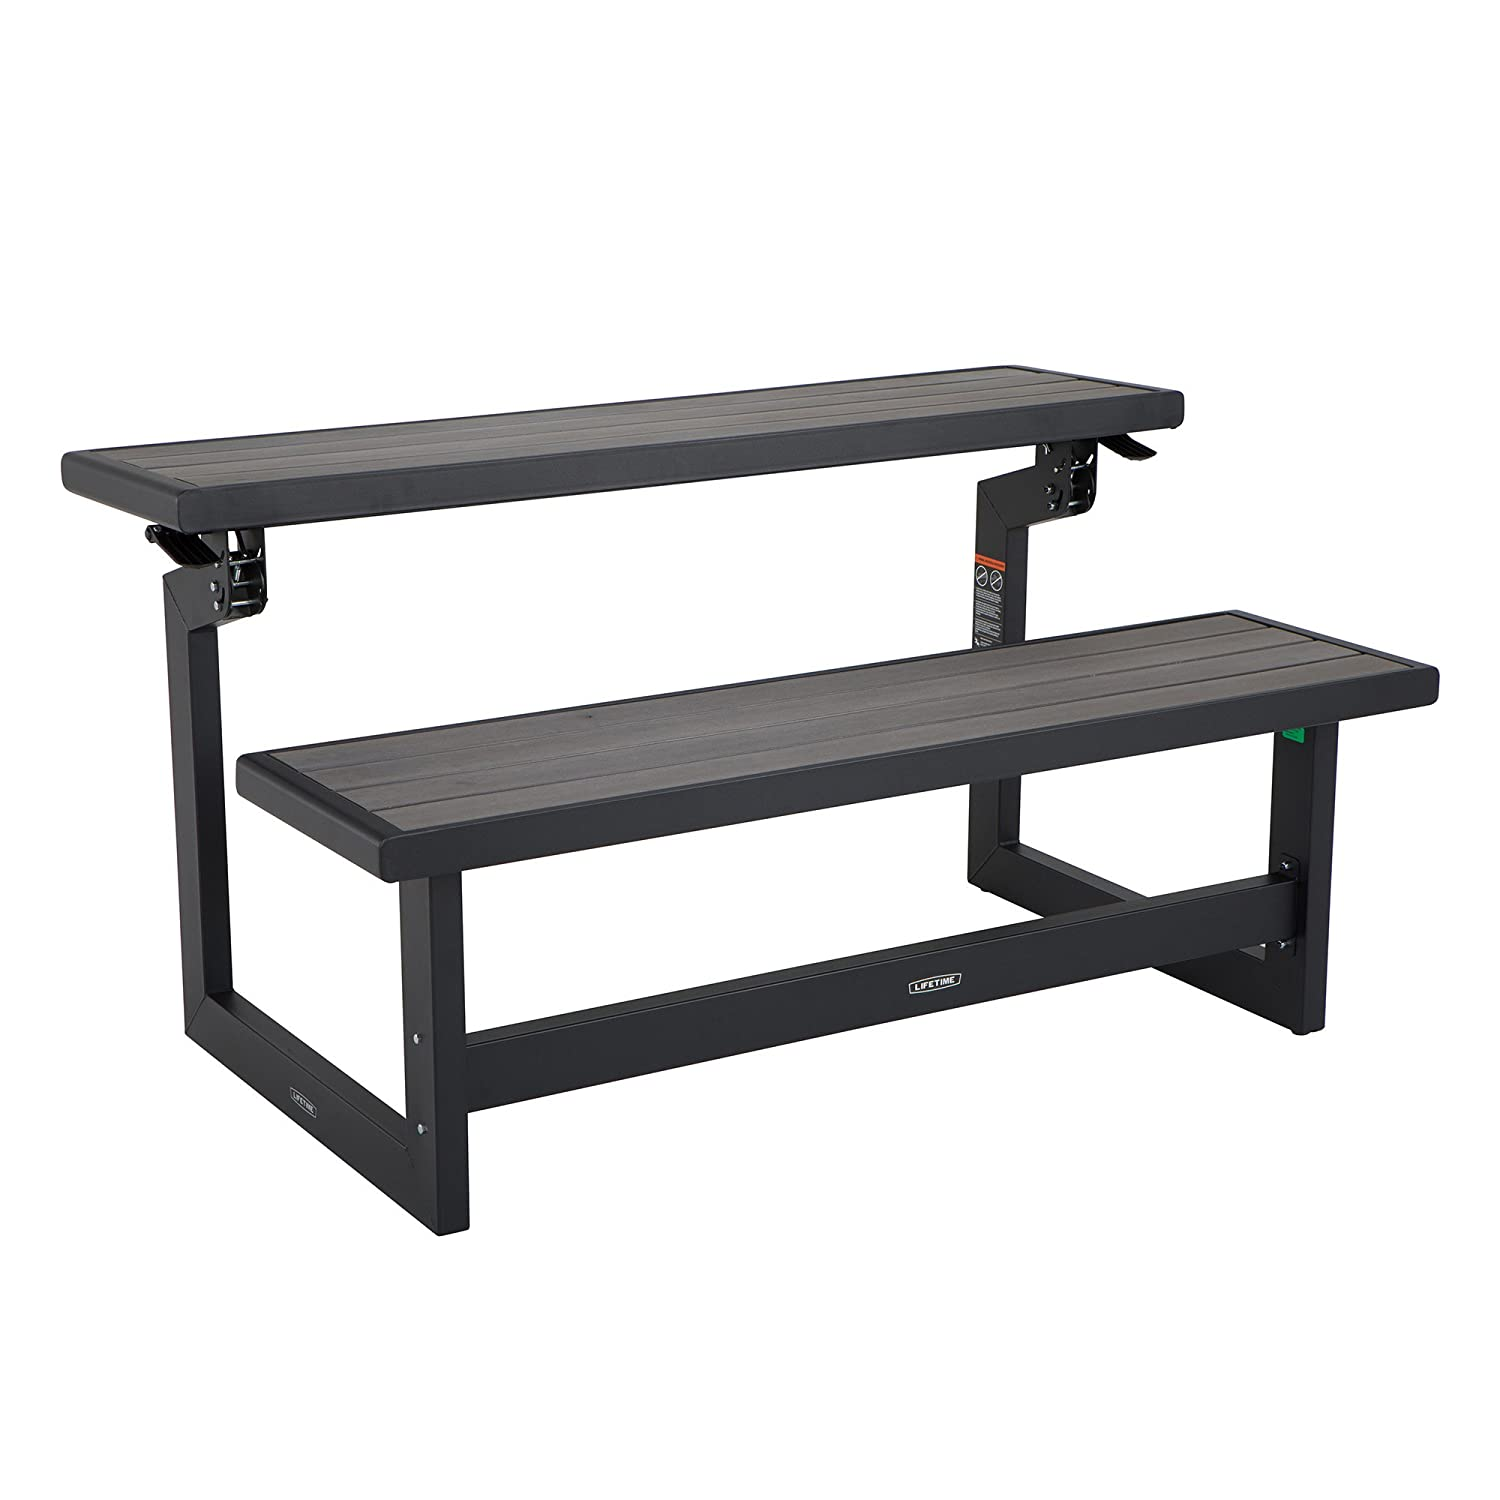 commercial tables in lifetime grade the x table picnic p bench